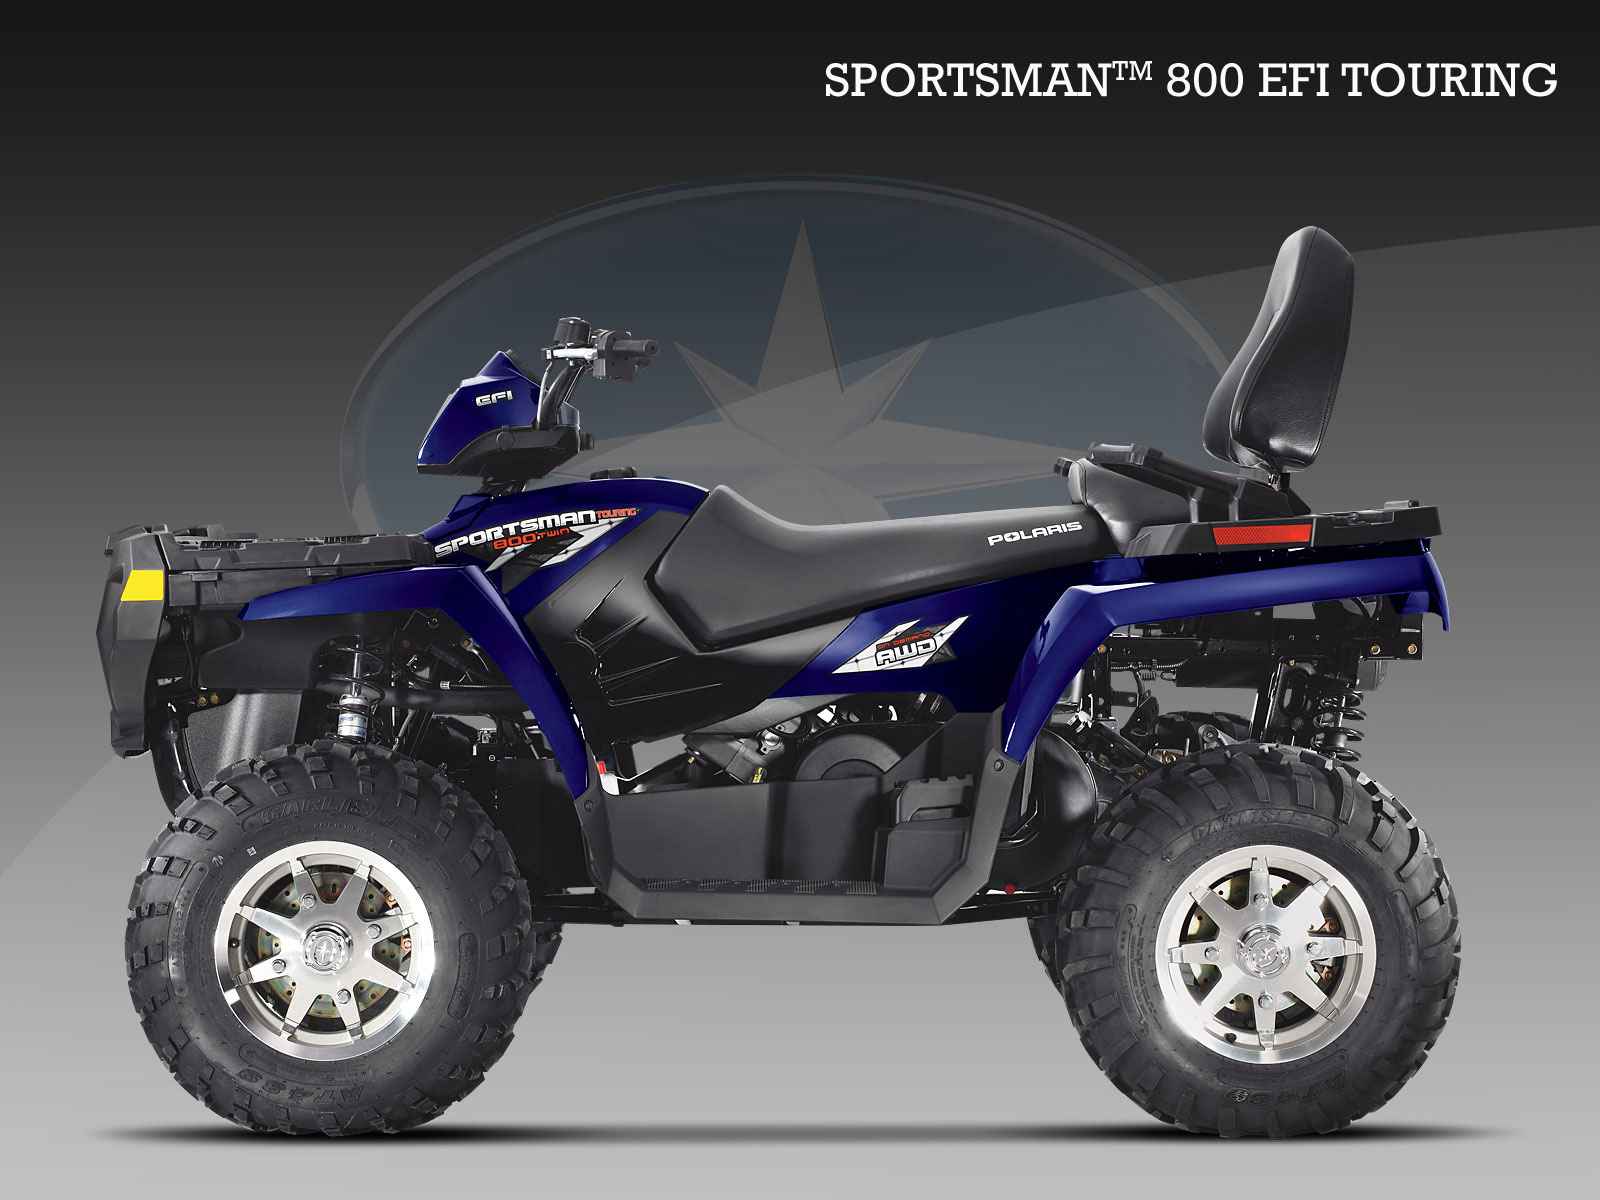 2009 polaris sportsman 800 efi touring. Black Bedroom Furniture Sets. Home Design Ideas